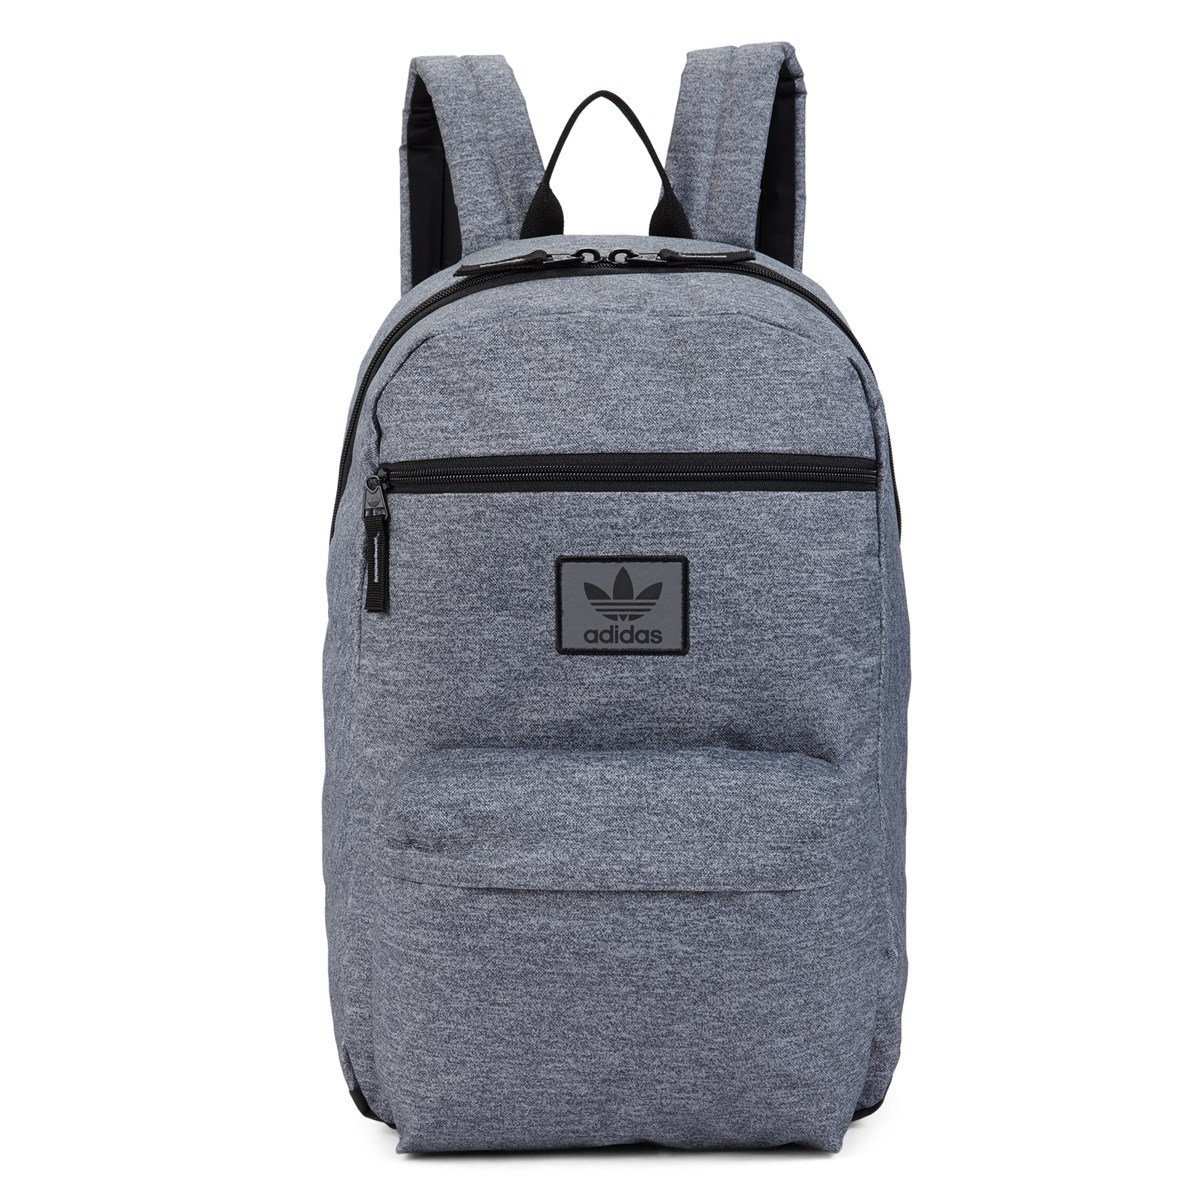 8c58aab018 adidas national backpack